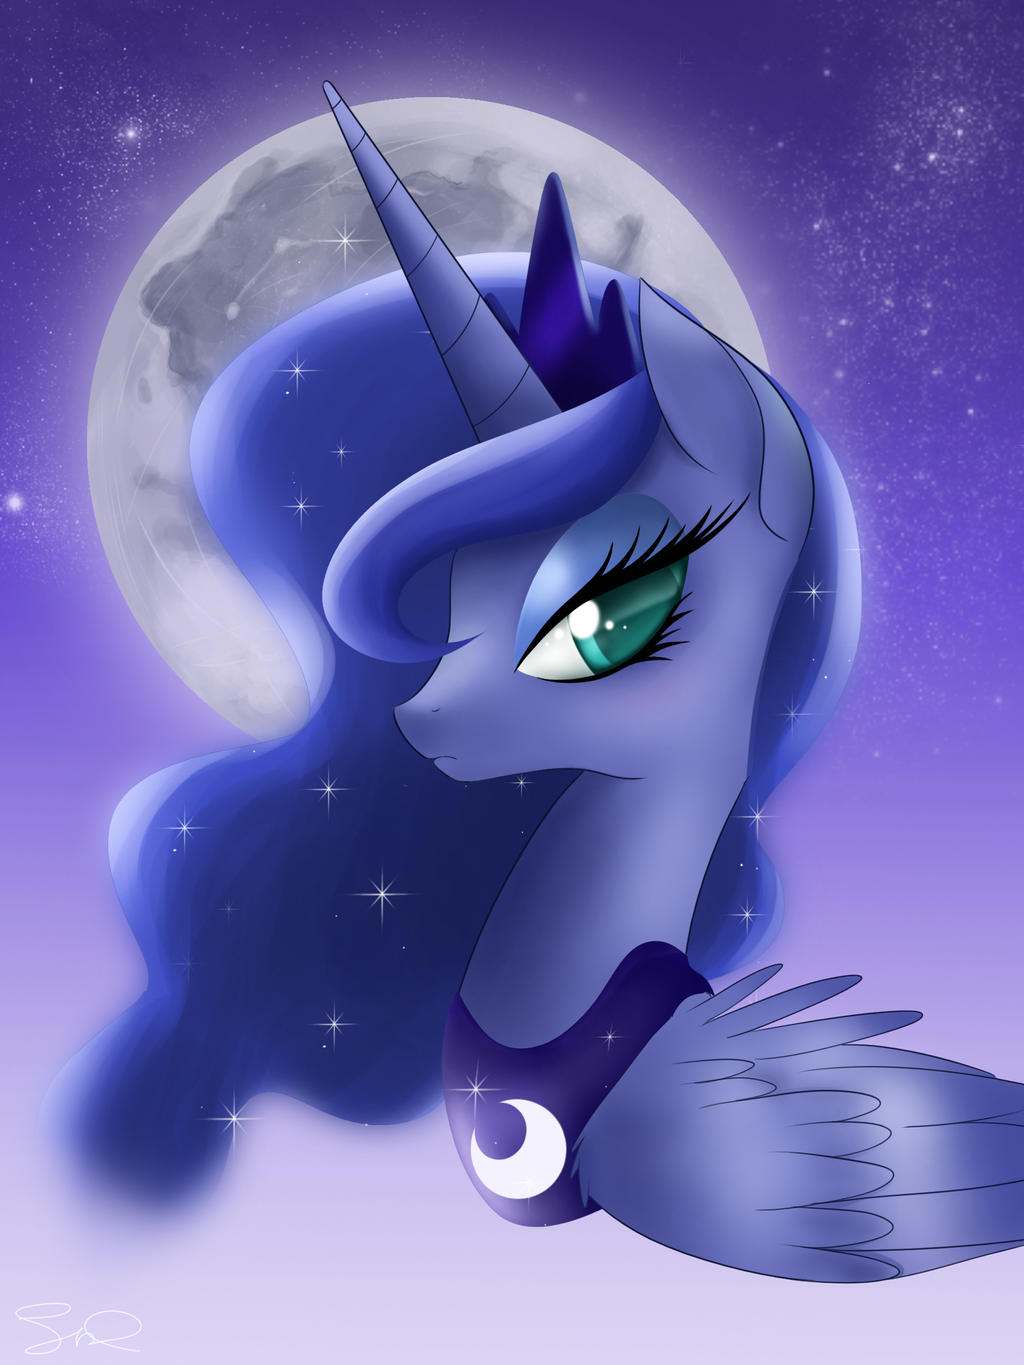 Luna by steffy-beff